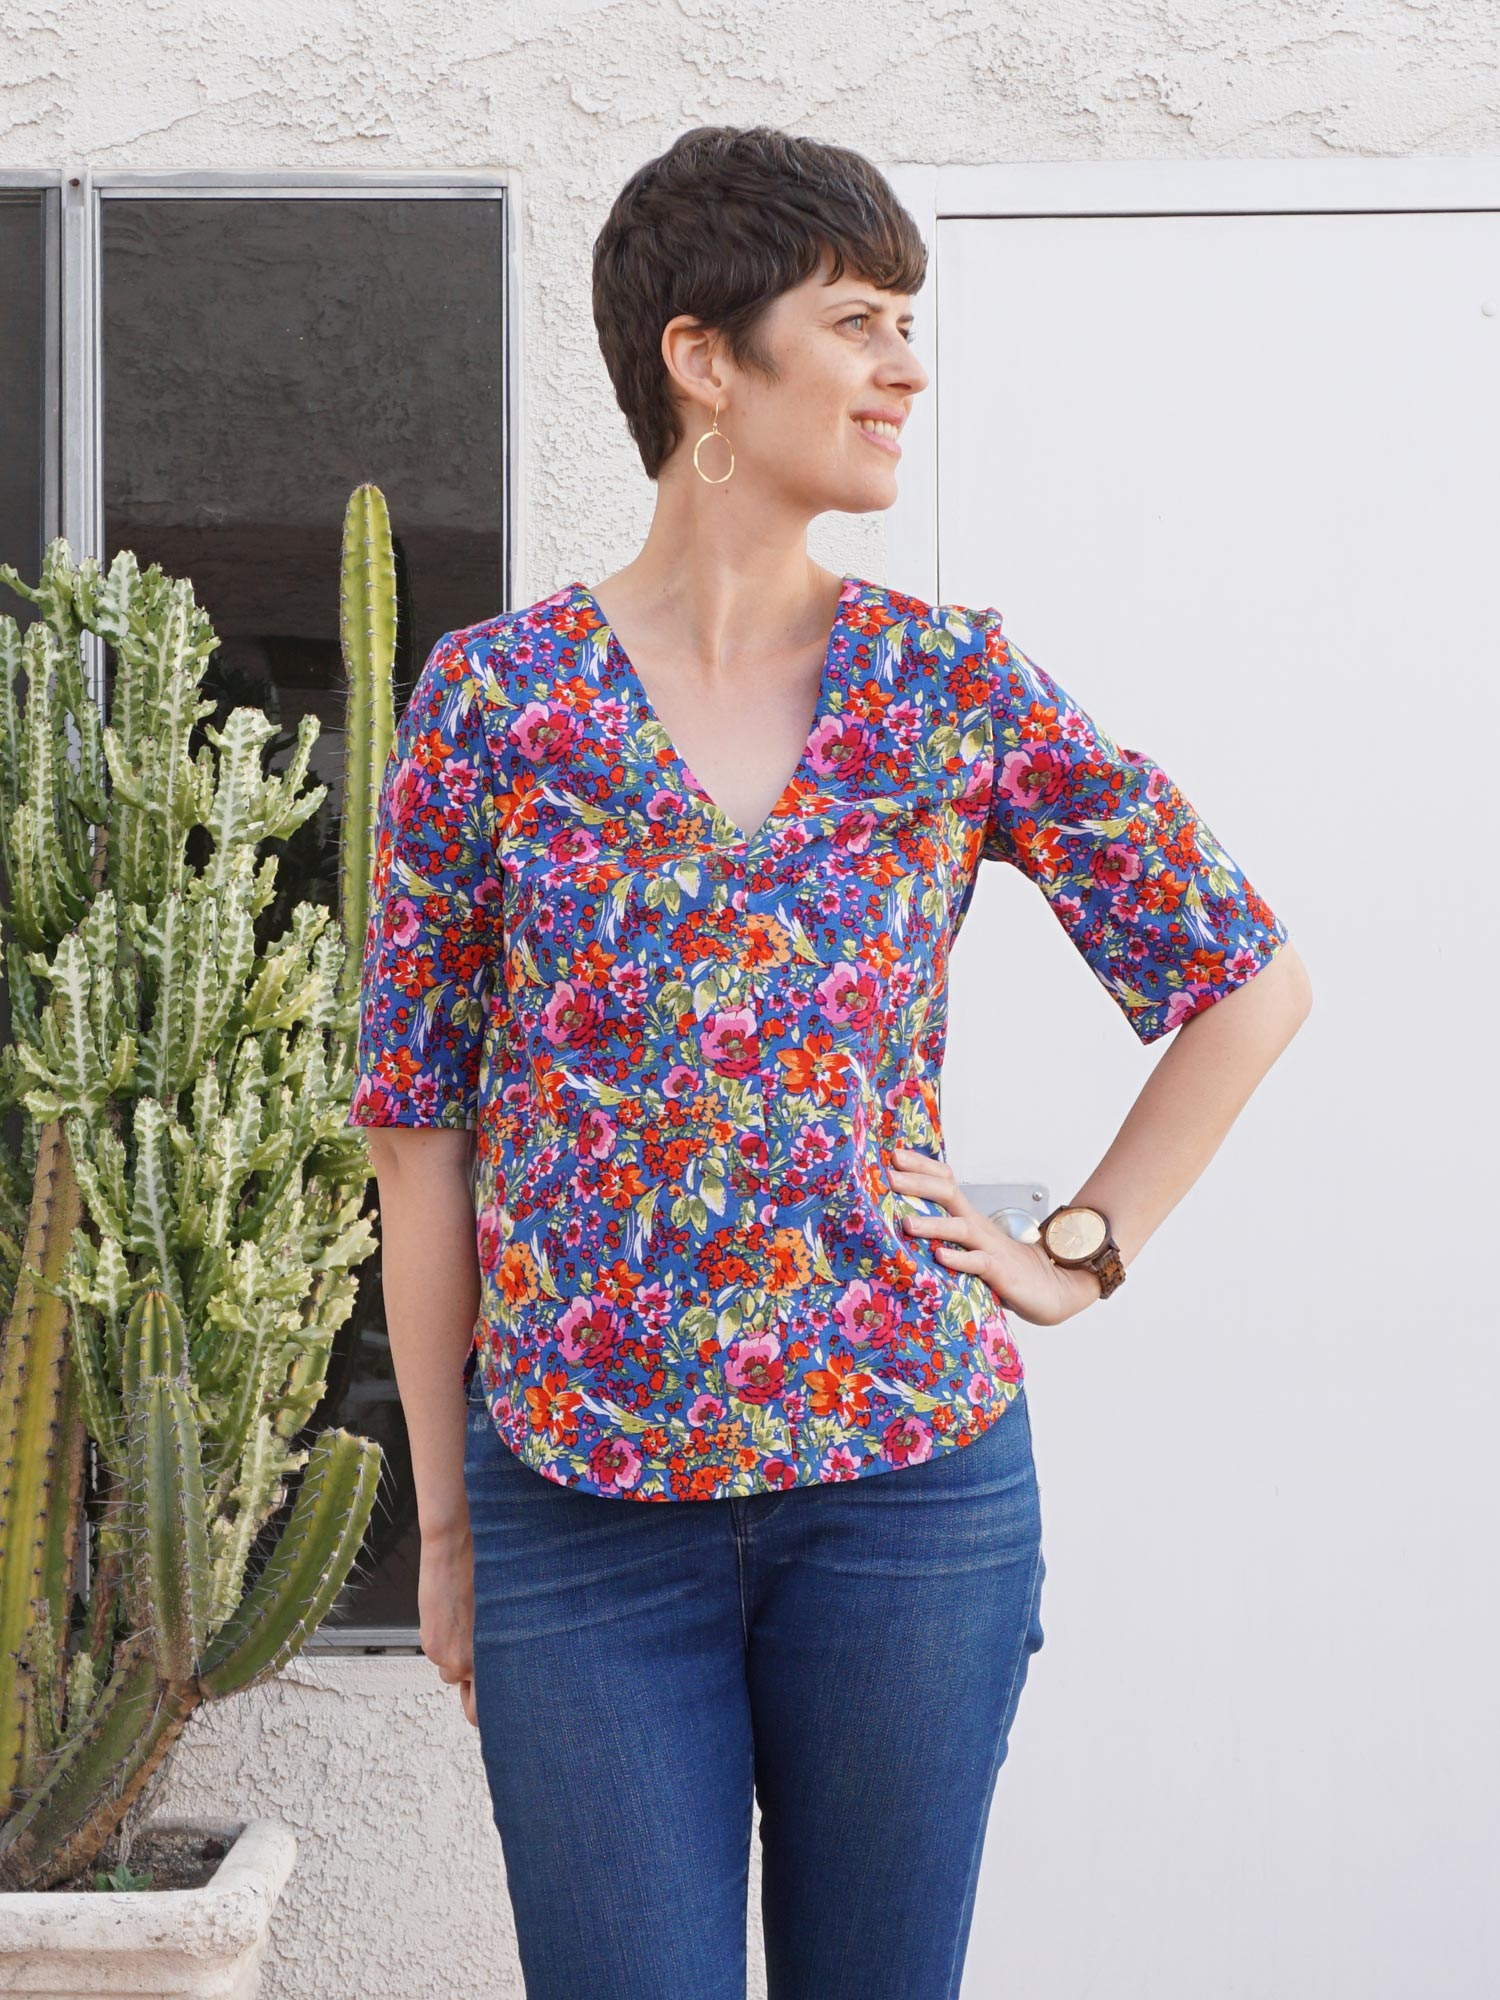 DIY Floral Blouse – Review of the Dove Blouse sewing pattern by Megan Nielsen